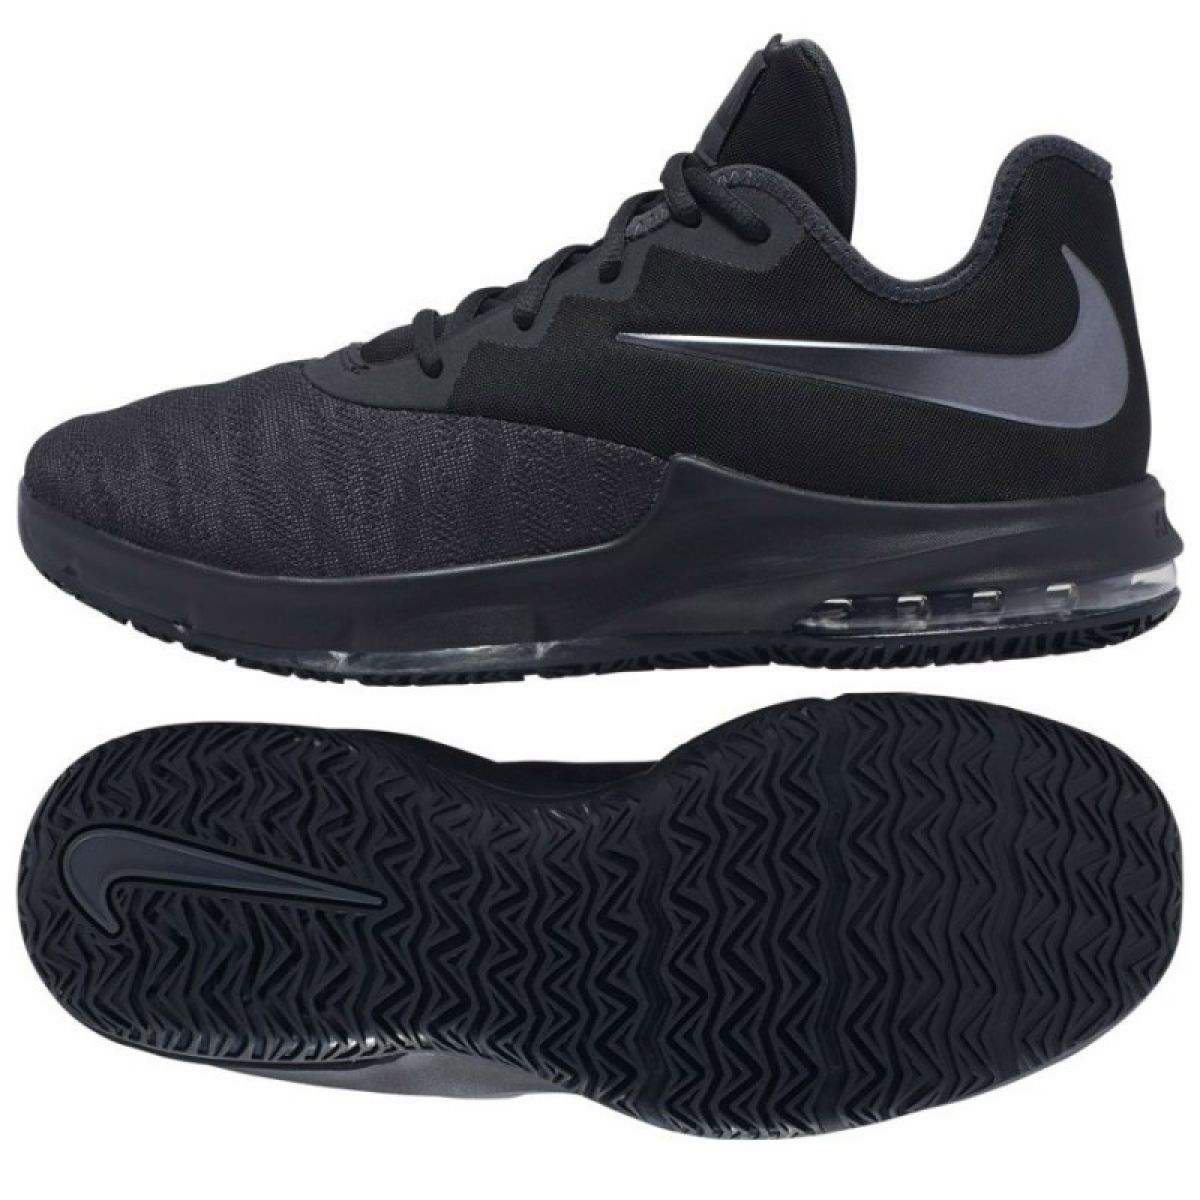 Details about Nike Air Max Infuriate Iii Low WM AJ5898 007 shoes black